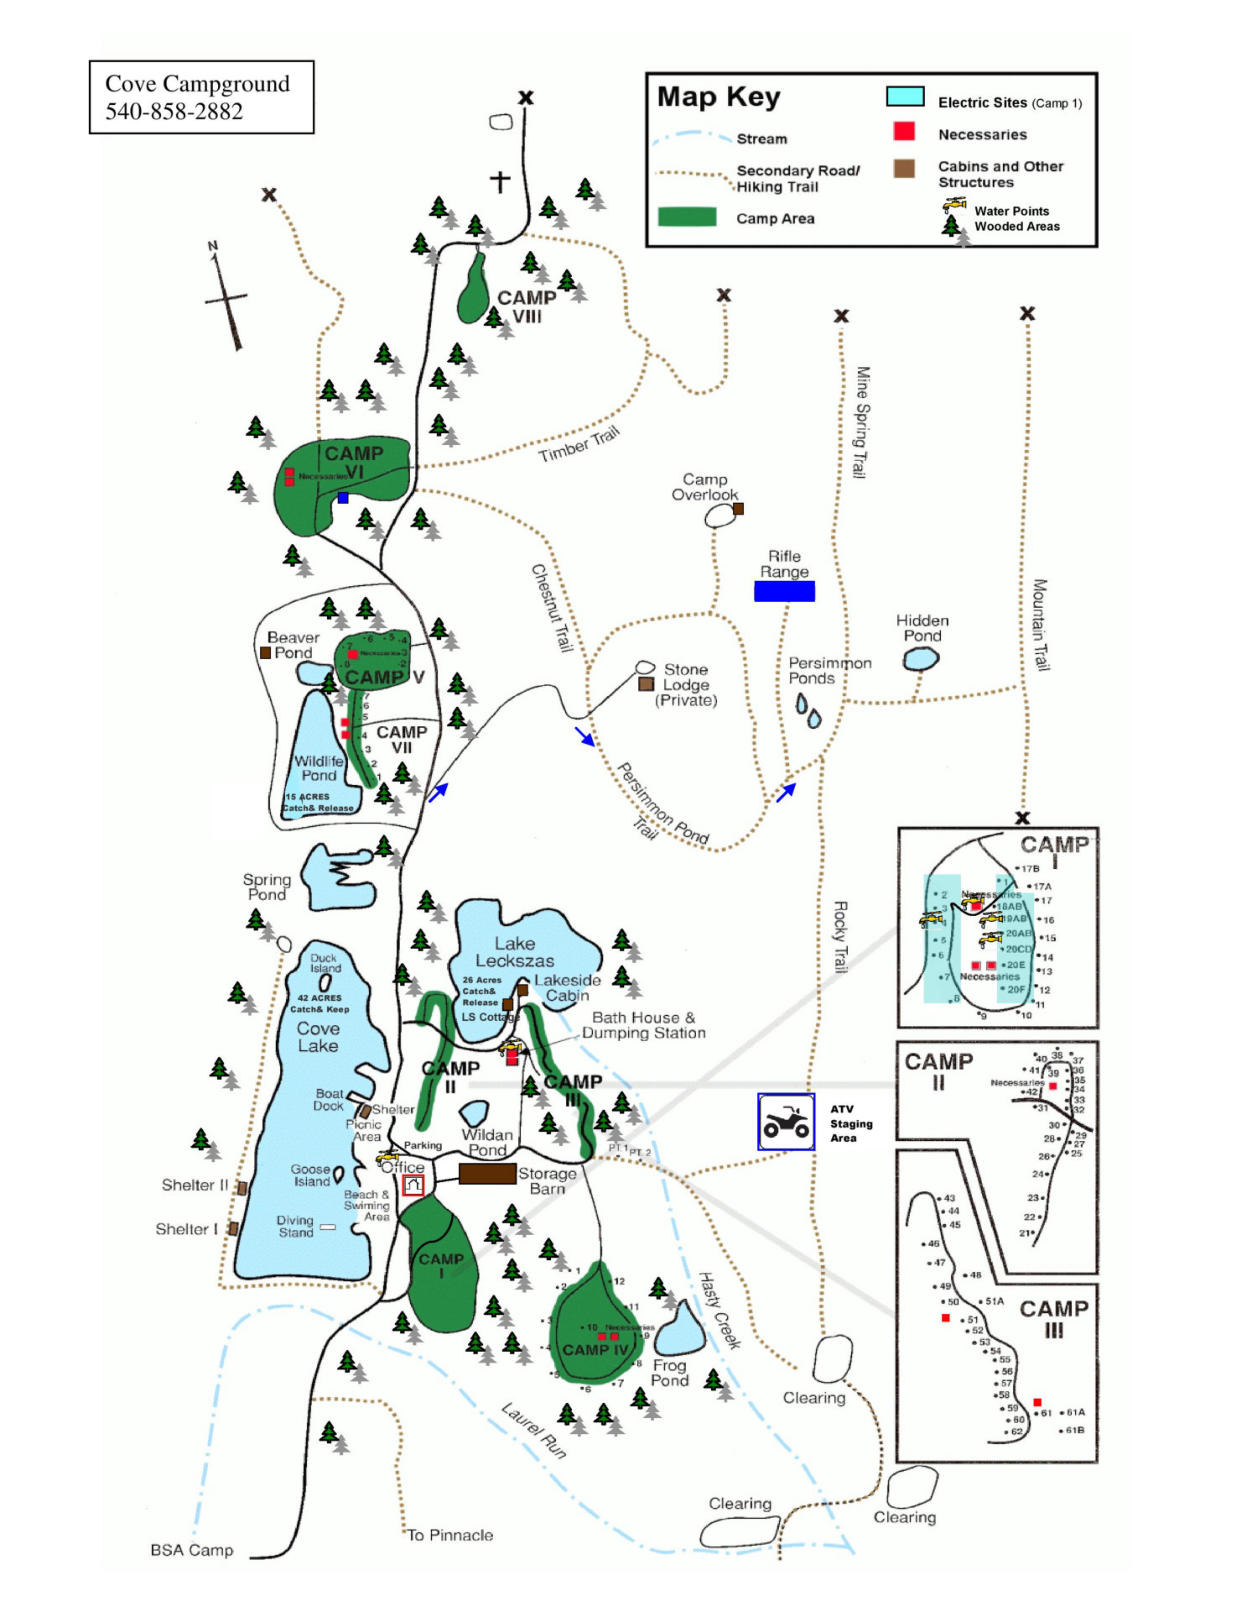 The Cove Campground